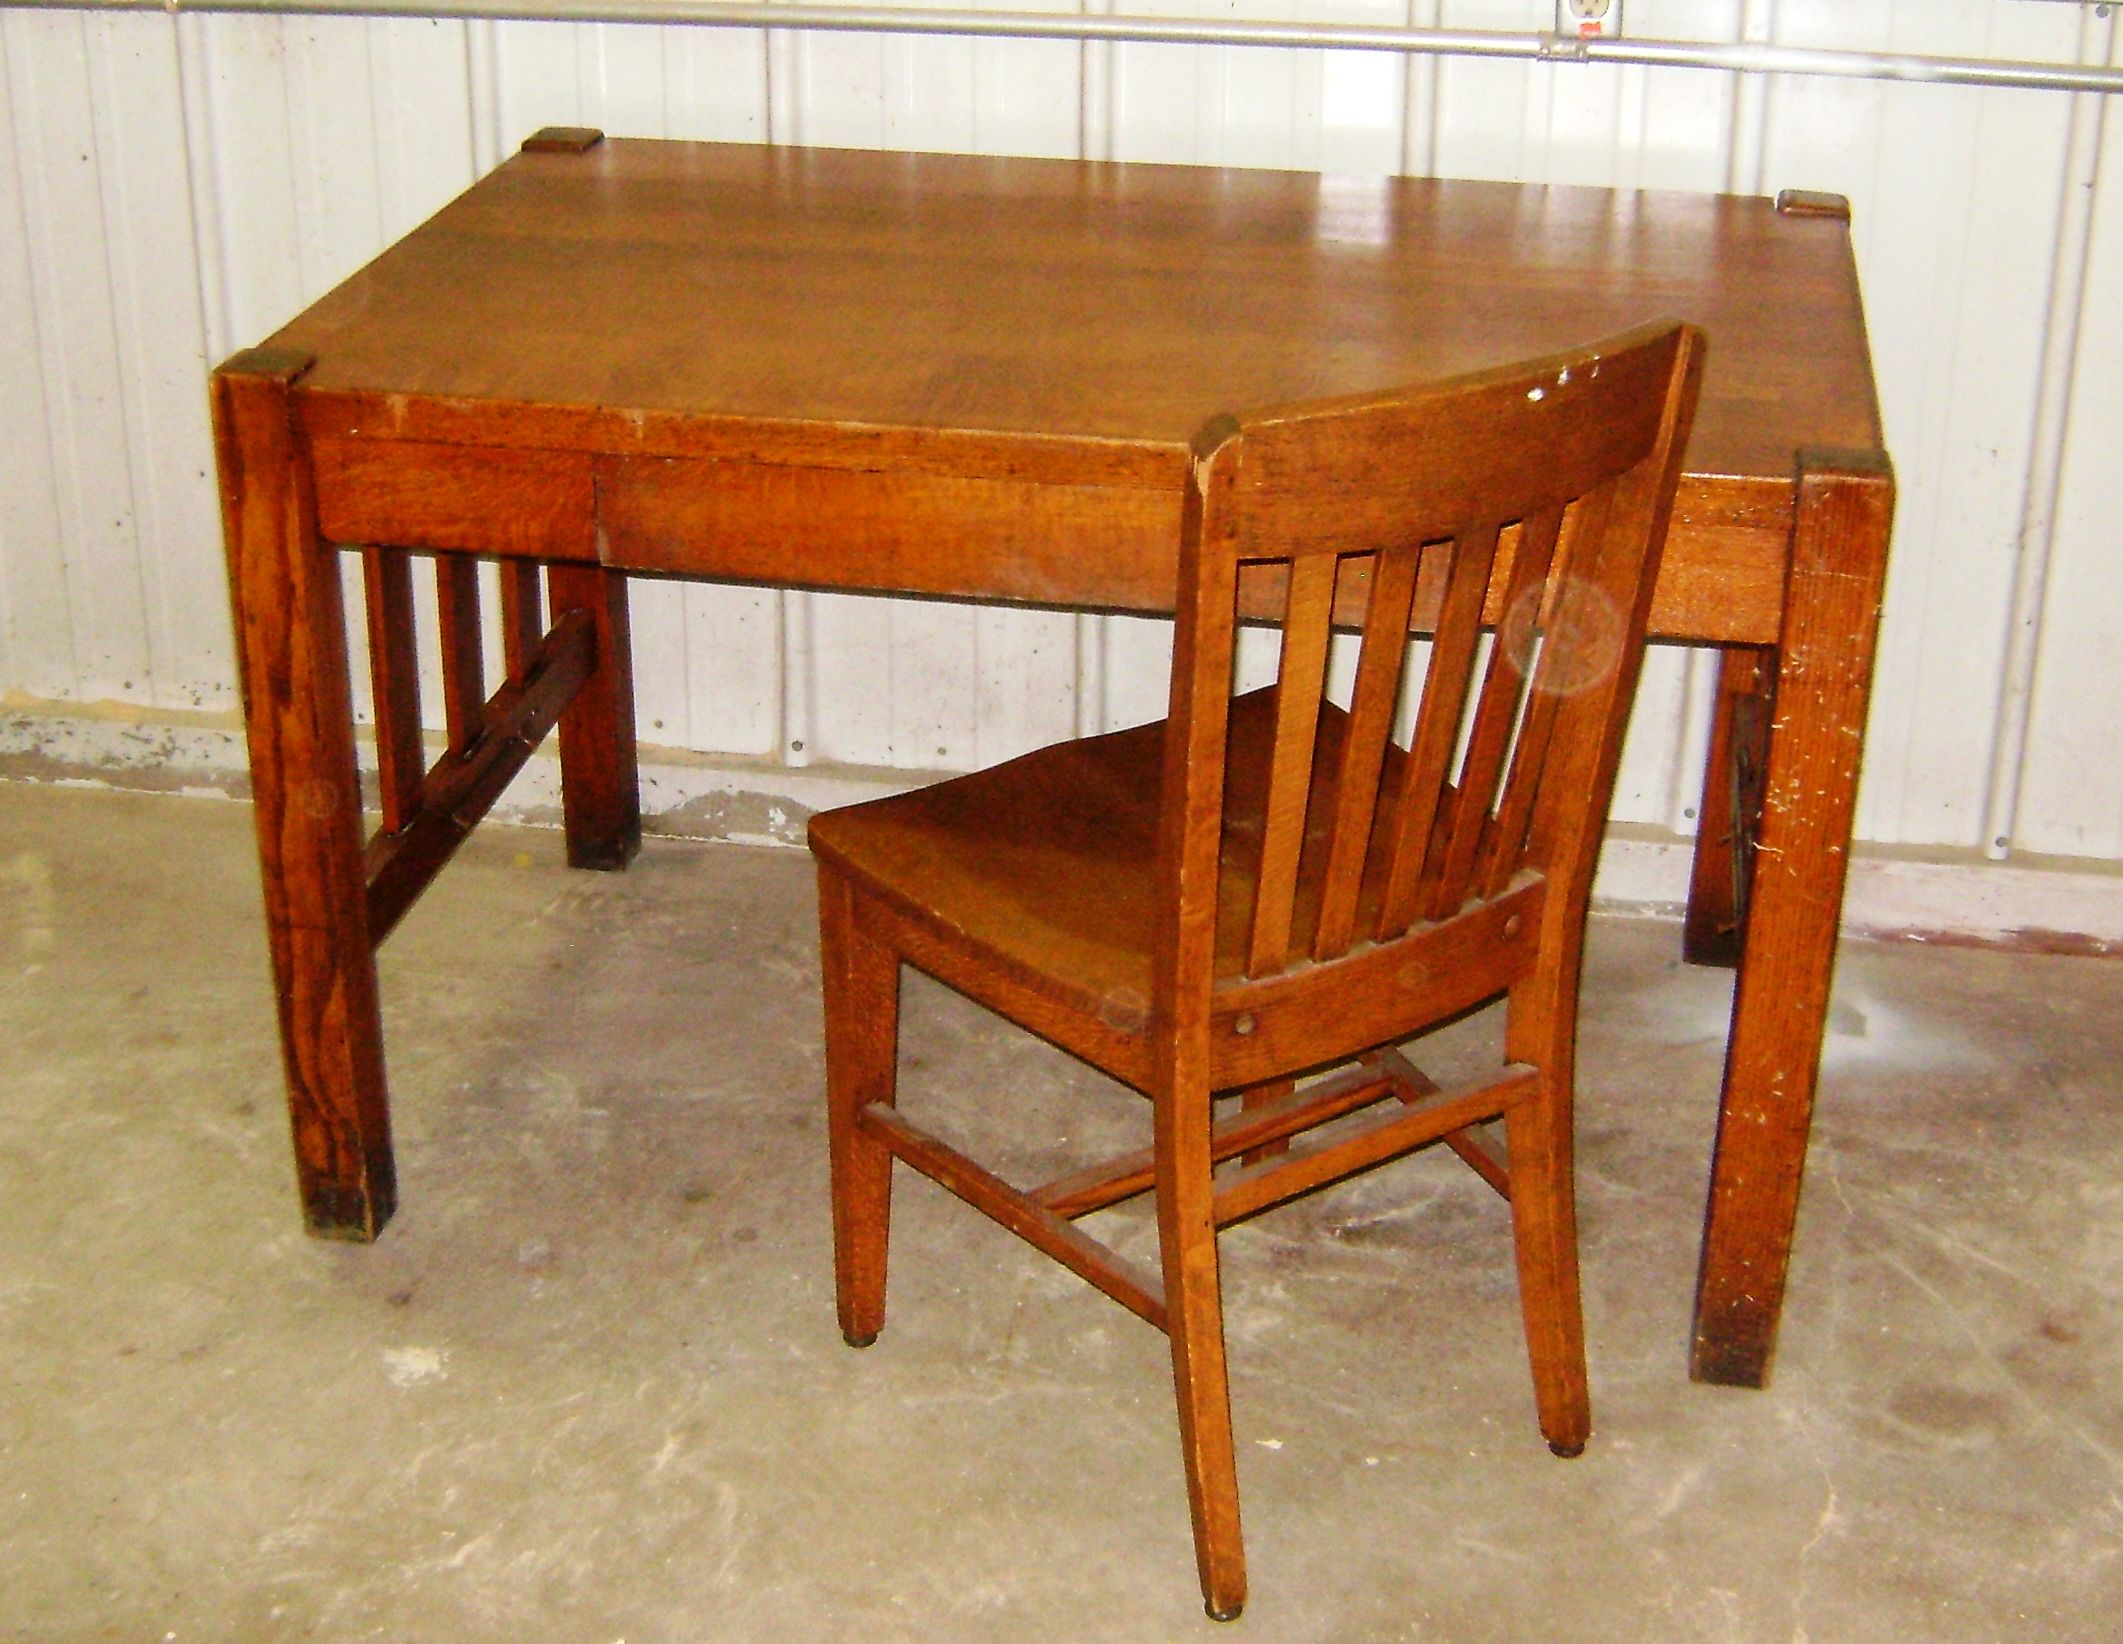 Attrayant Mission Style Library Desk With Chair For Sale At Tiny Green Cabins Antique  Sale $250.00